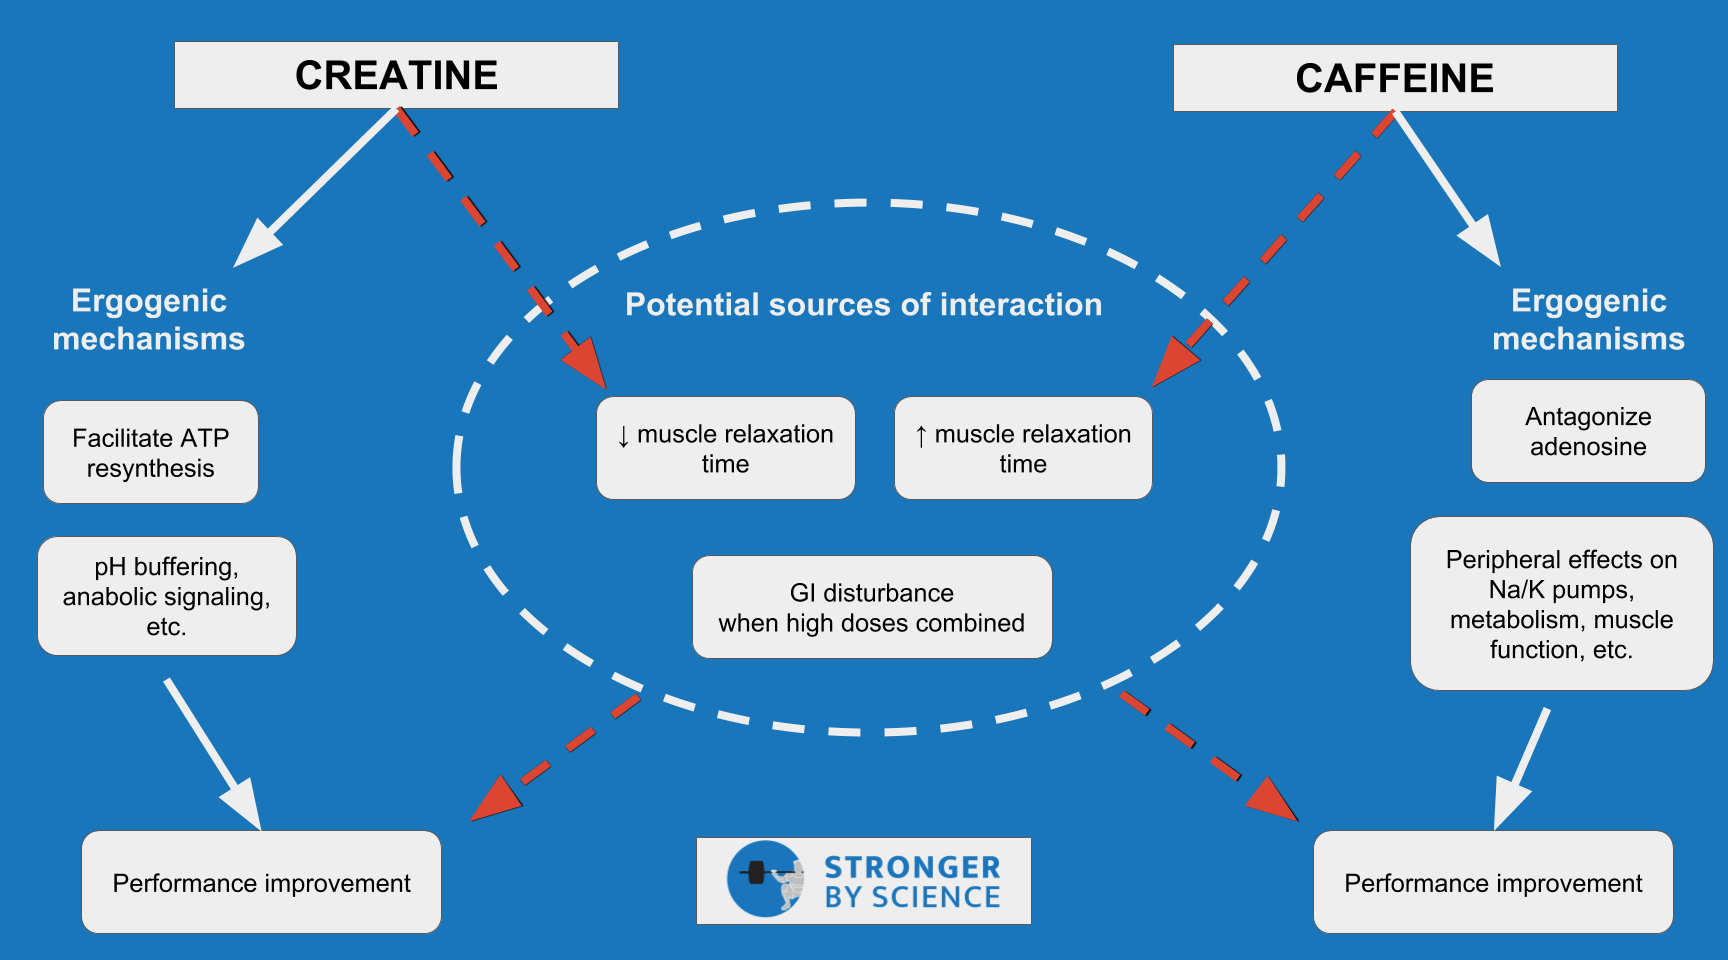 creatine and caffeine